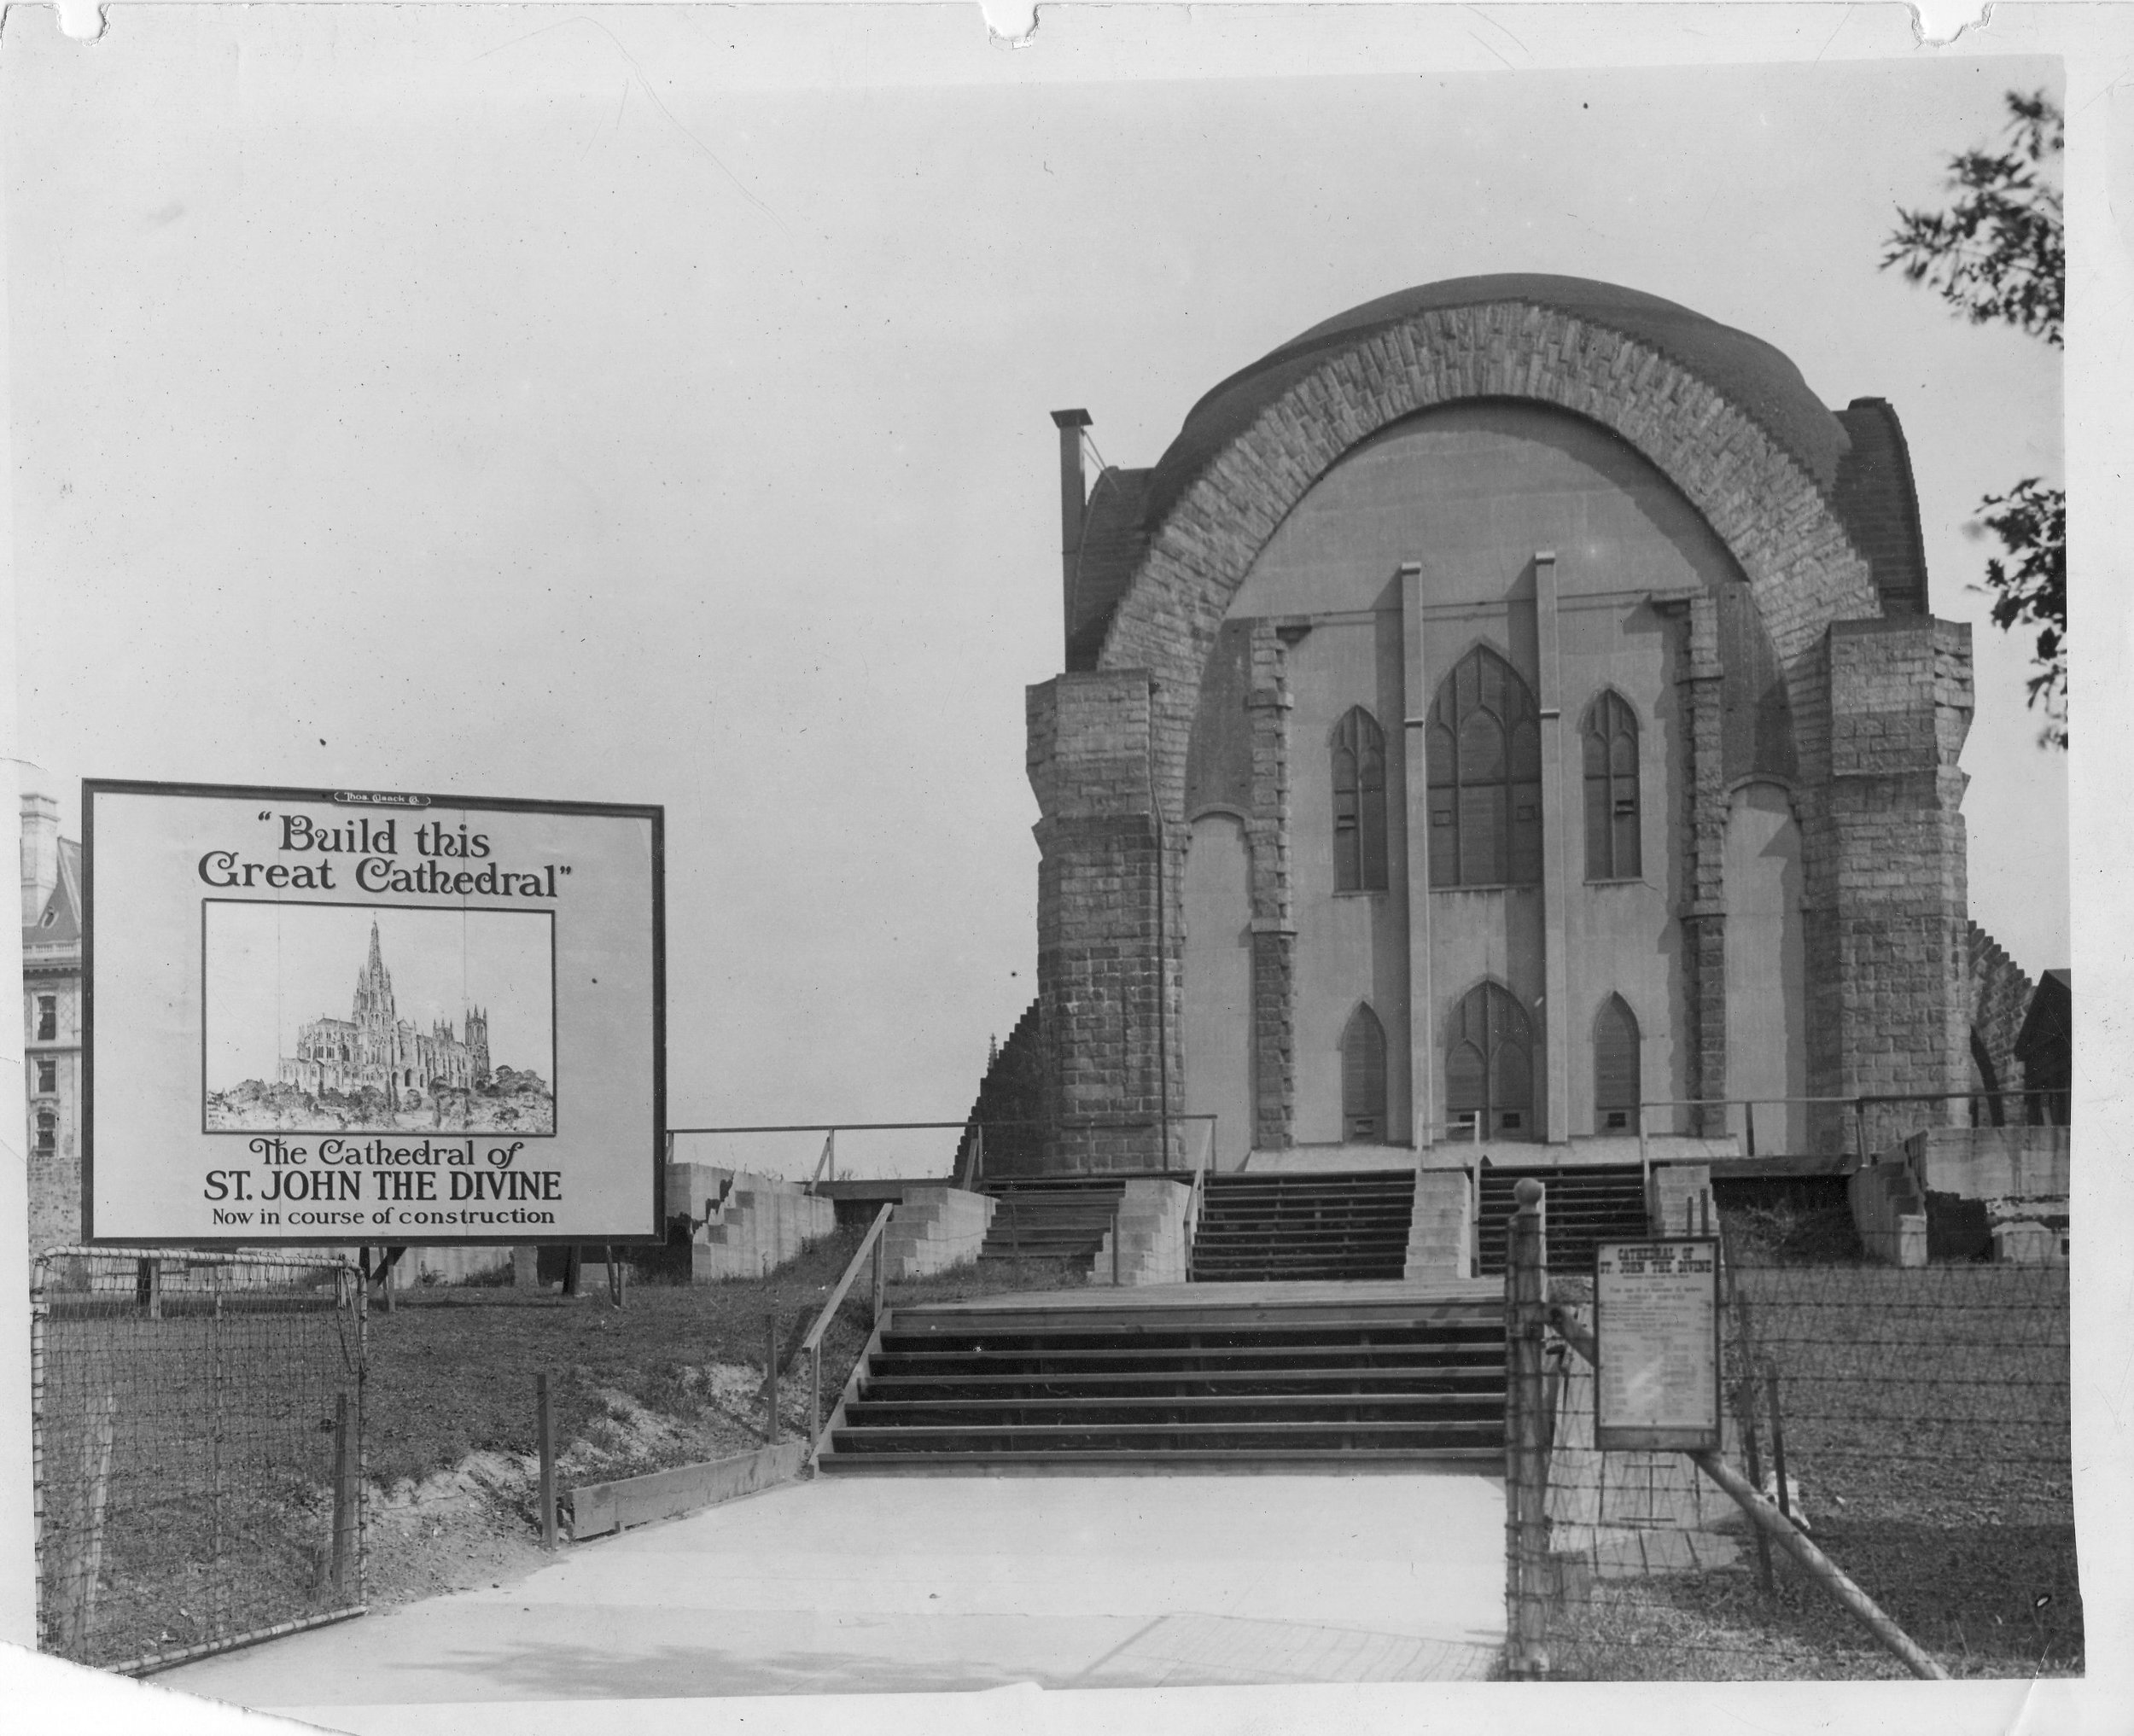 1920: St. John the Divine with the dome and temporary walls complete. Credit: Episcopal Diocese of New York Archives.